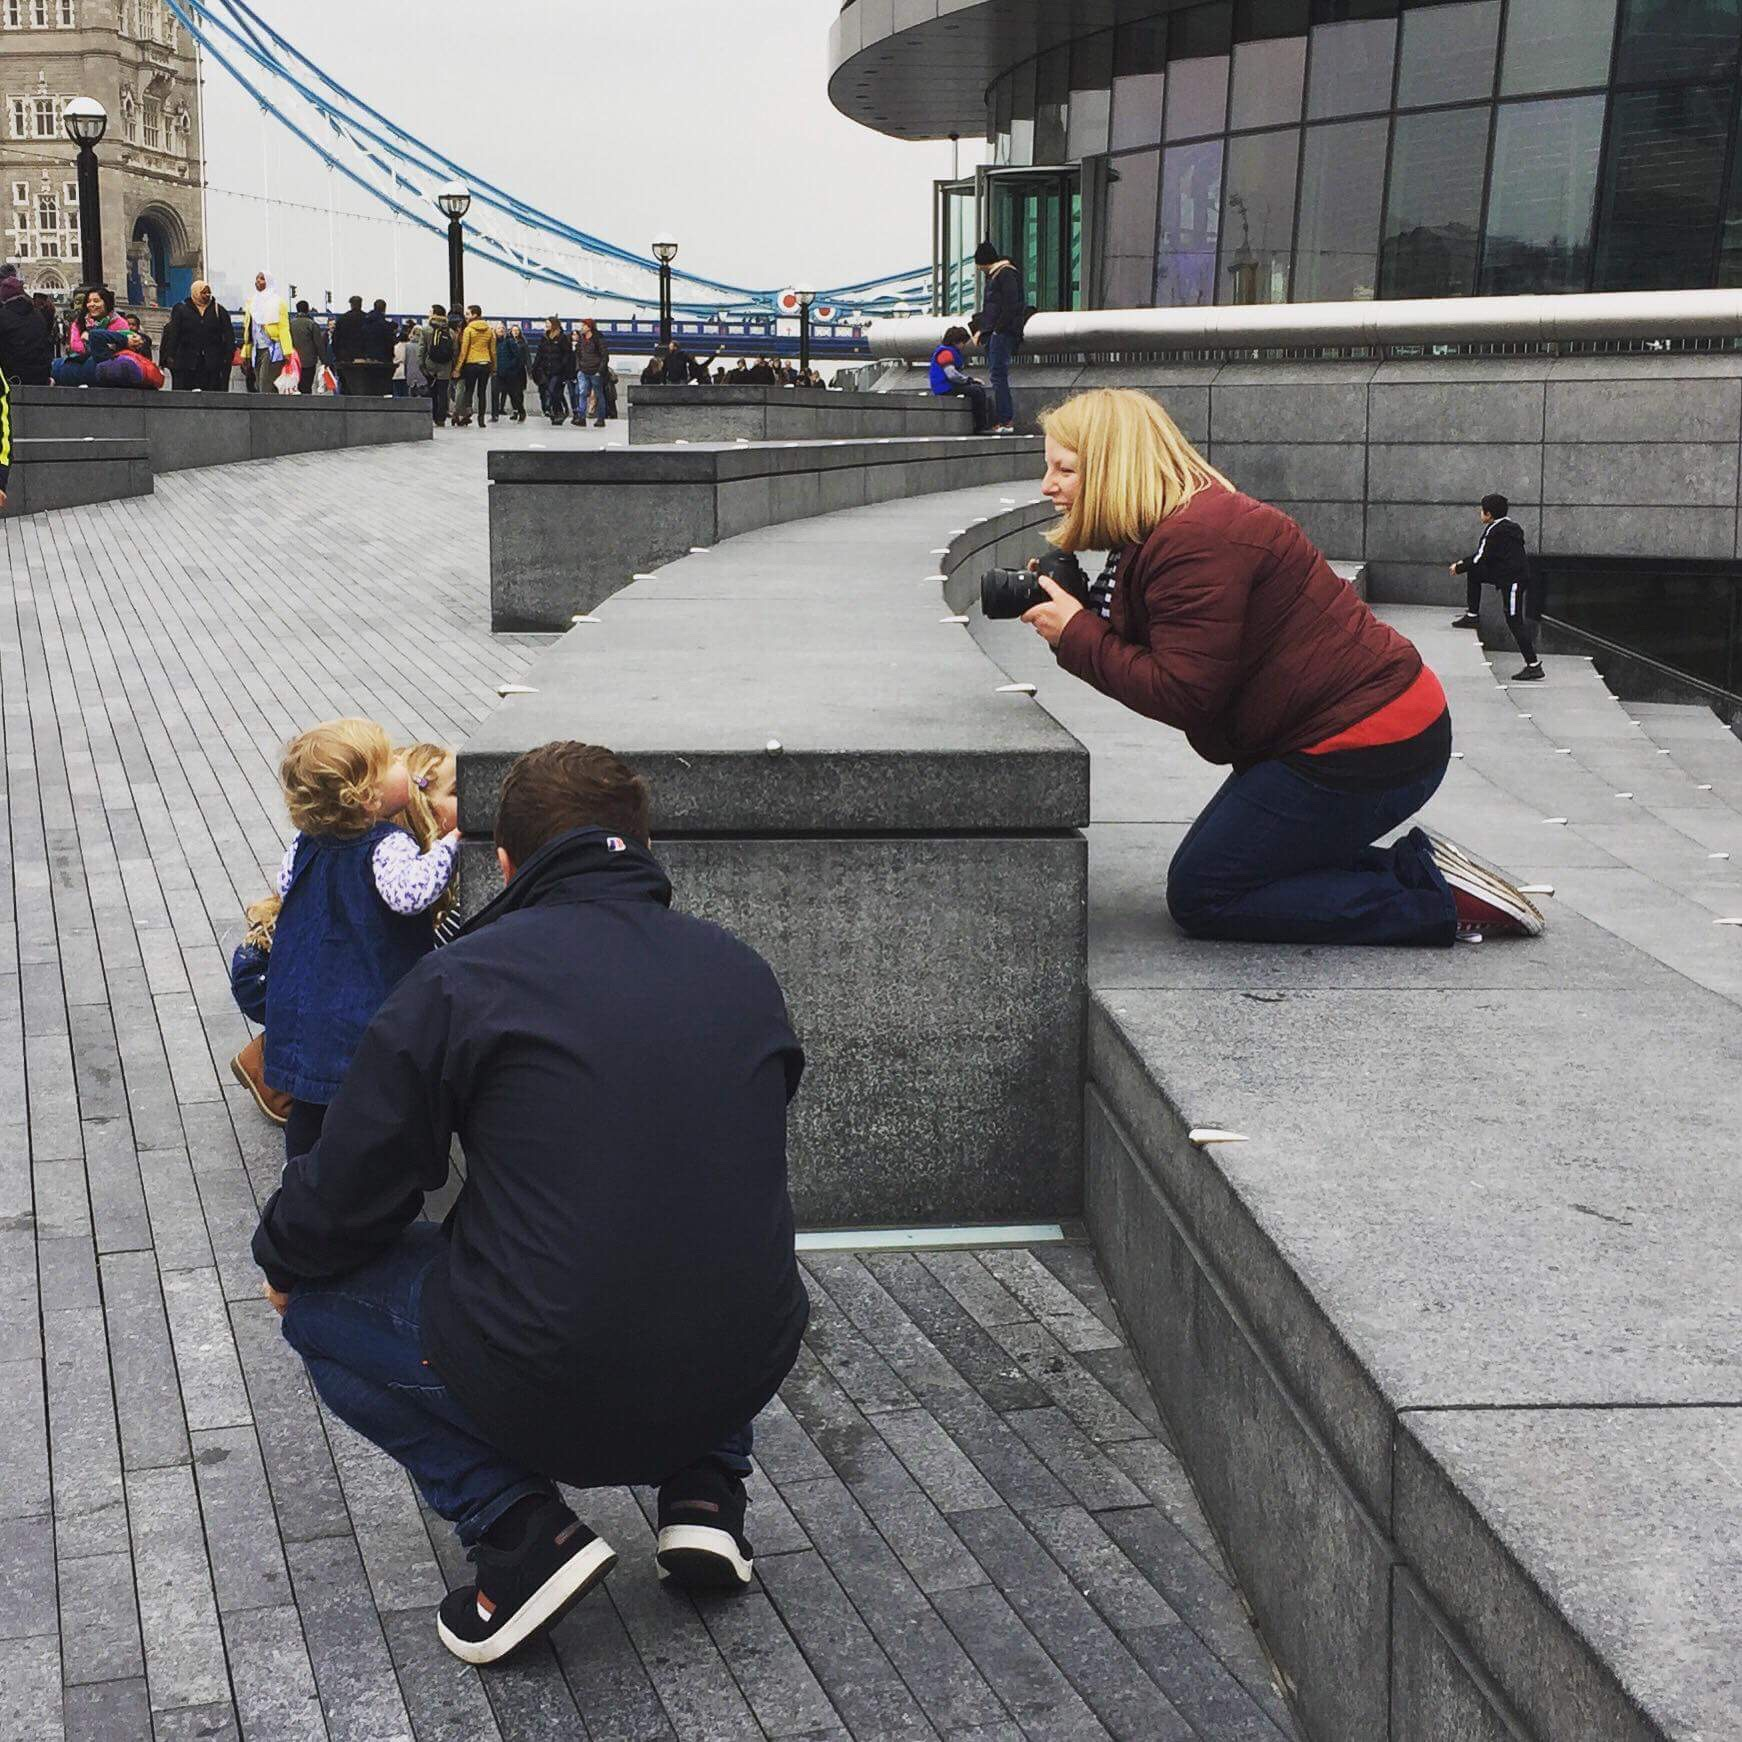 Kirsty Hamilton Photography in action Tower Bridge London